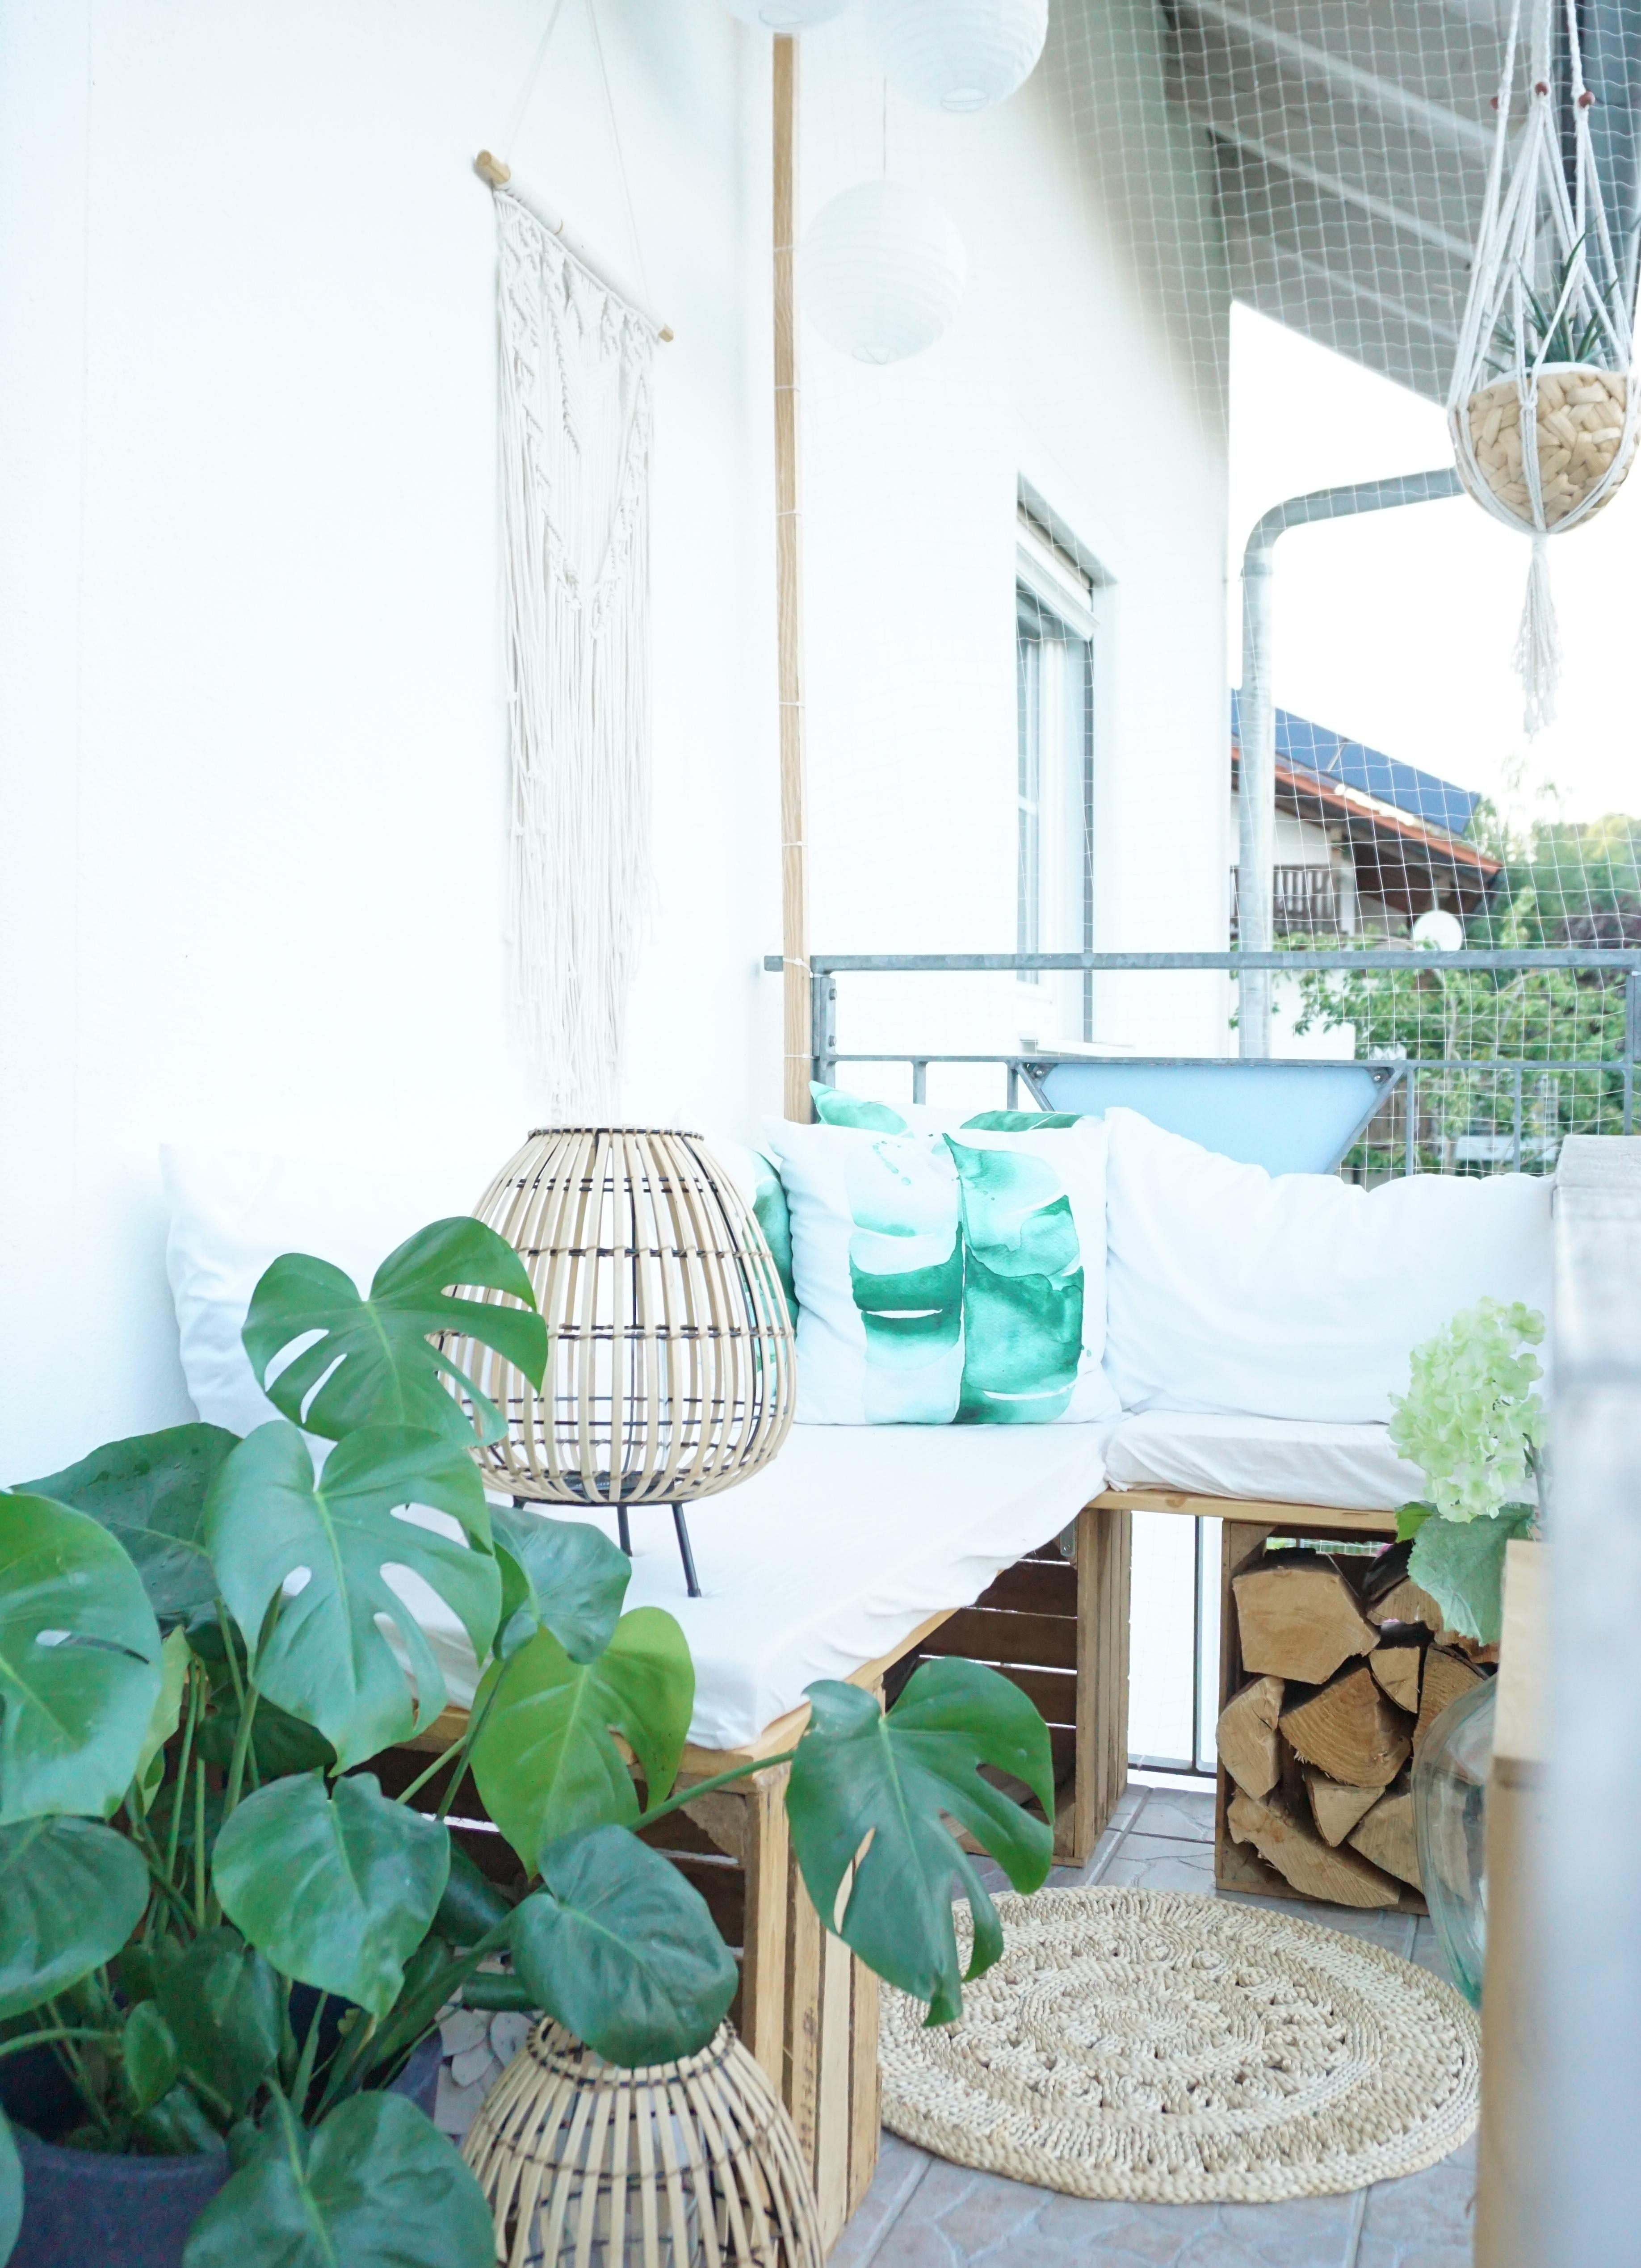 #balkon #liebe #balkonien #outdoor #hygge #windlicht #monstera